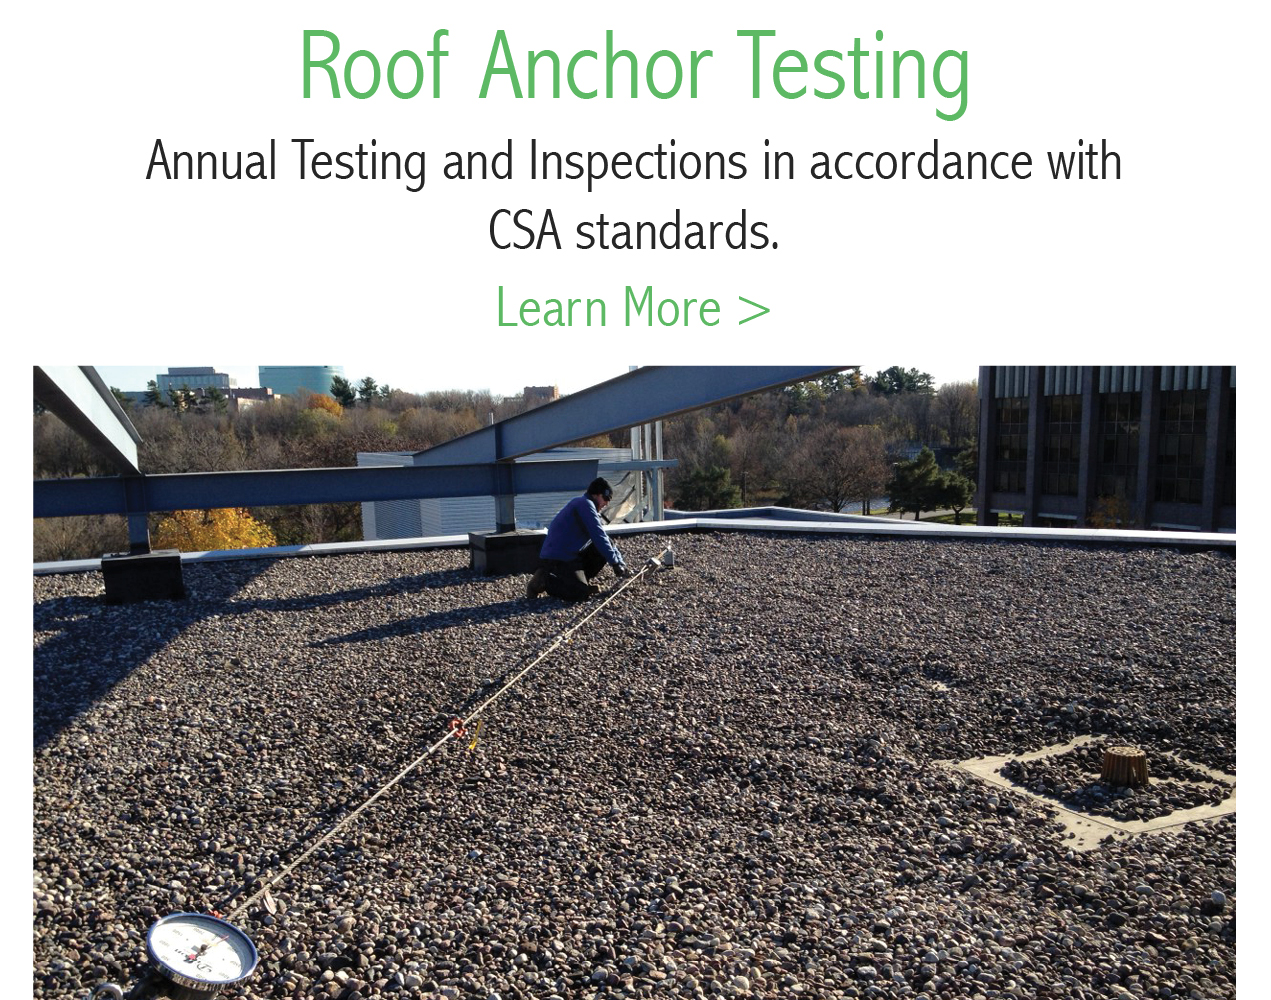 Roof Anchor Testing